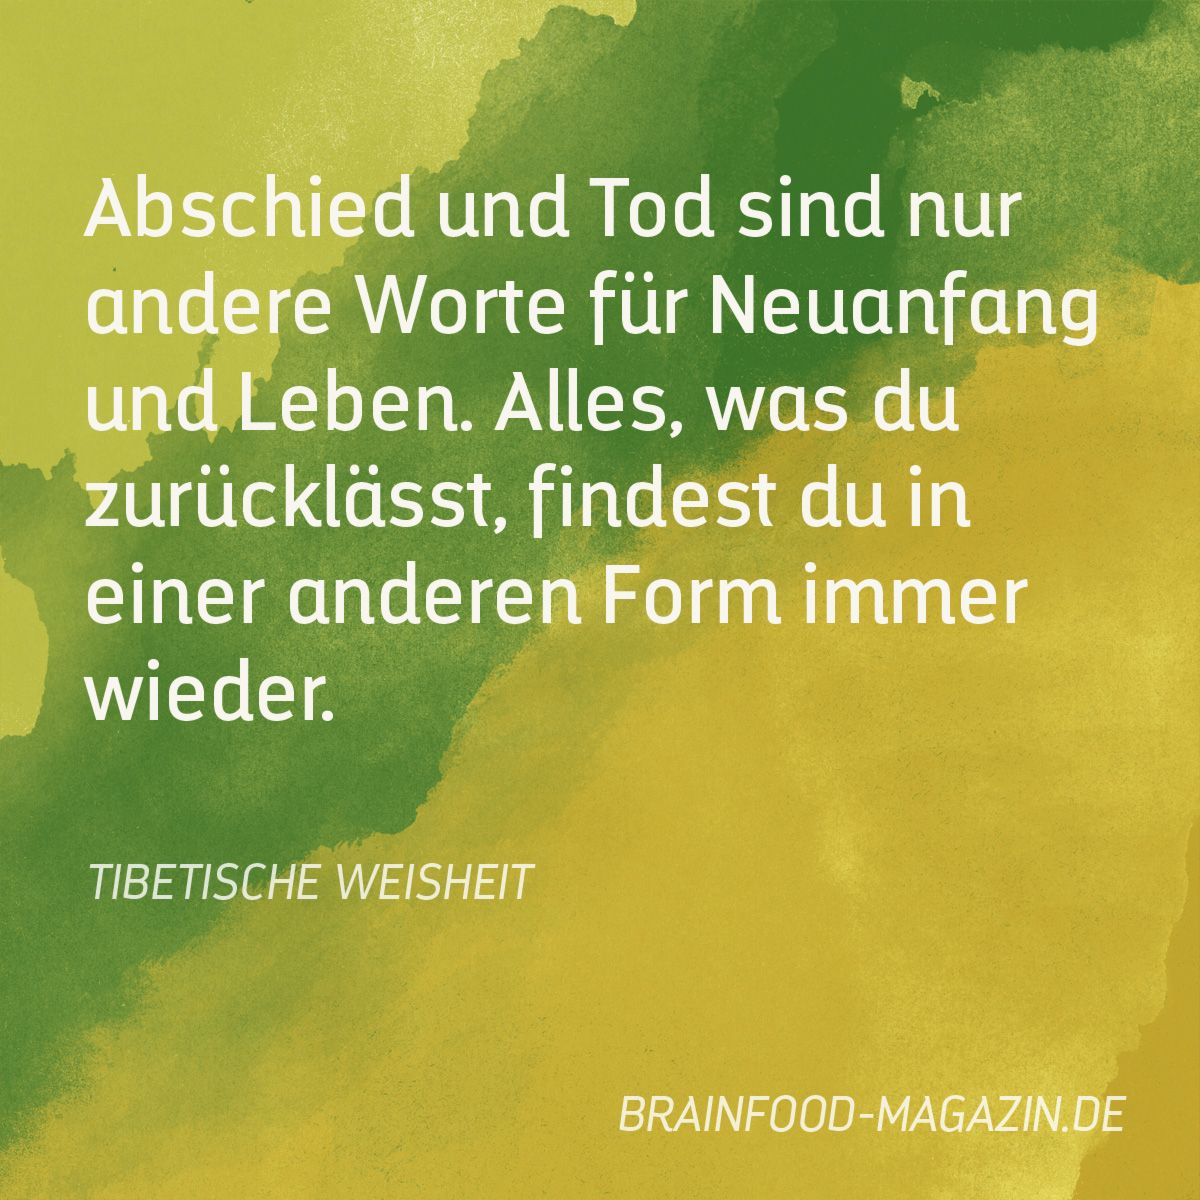 Abschied Neuanfang abschied und tod neuanfang abschied und tod